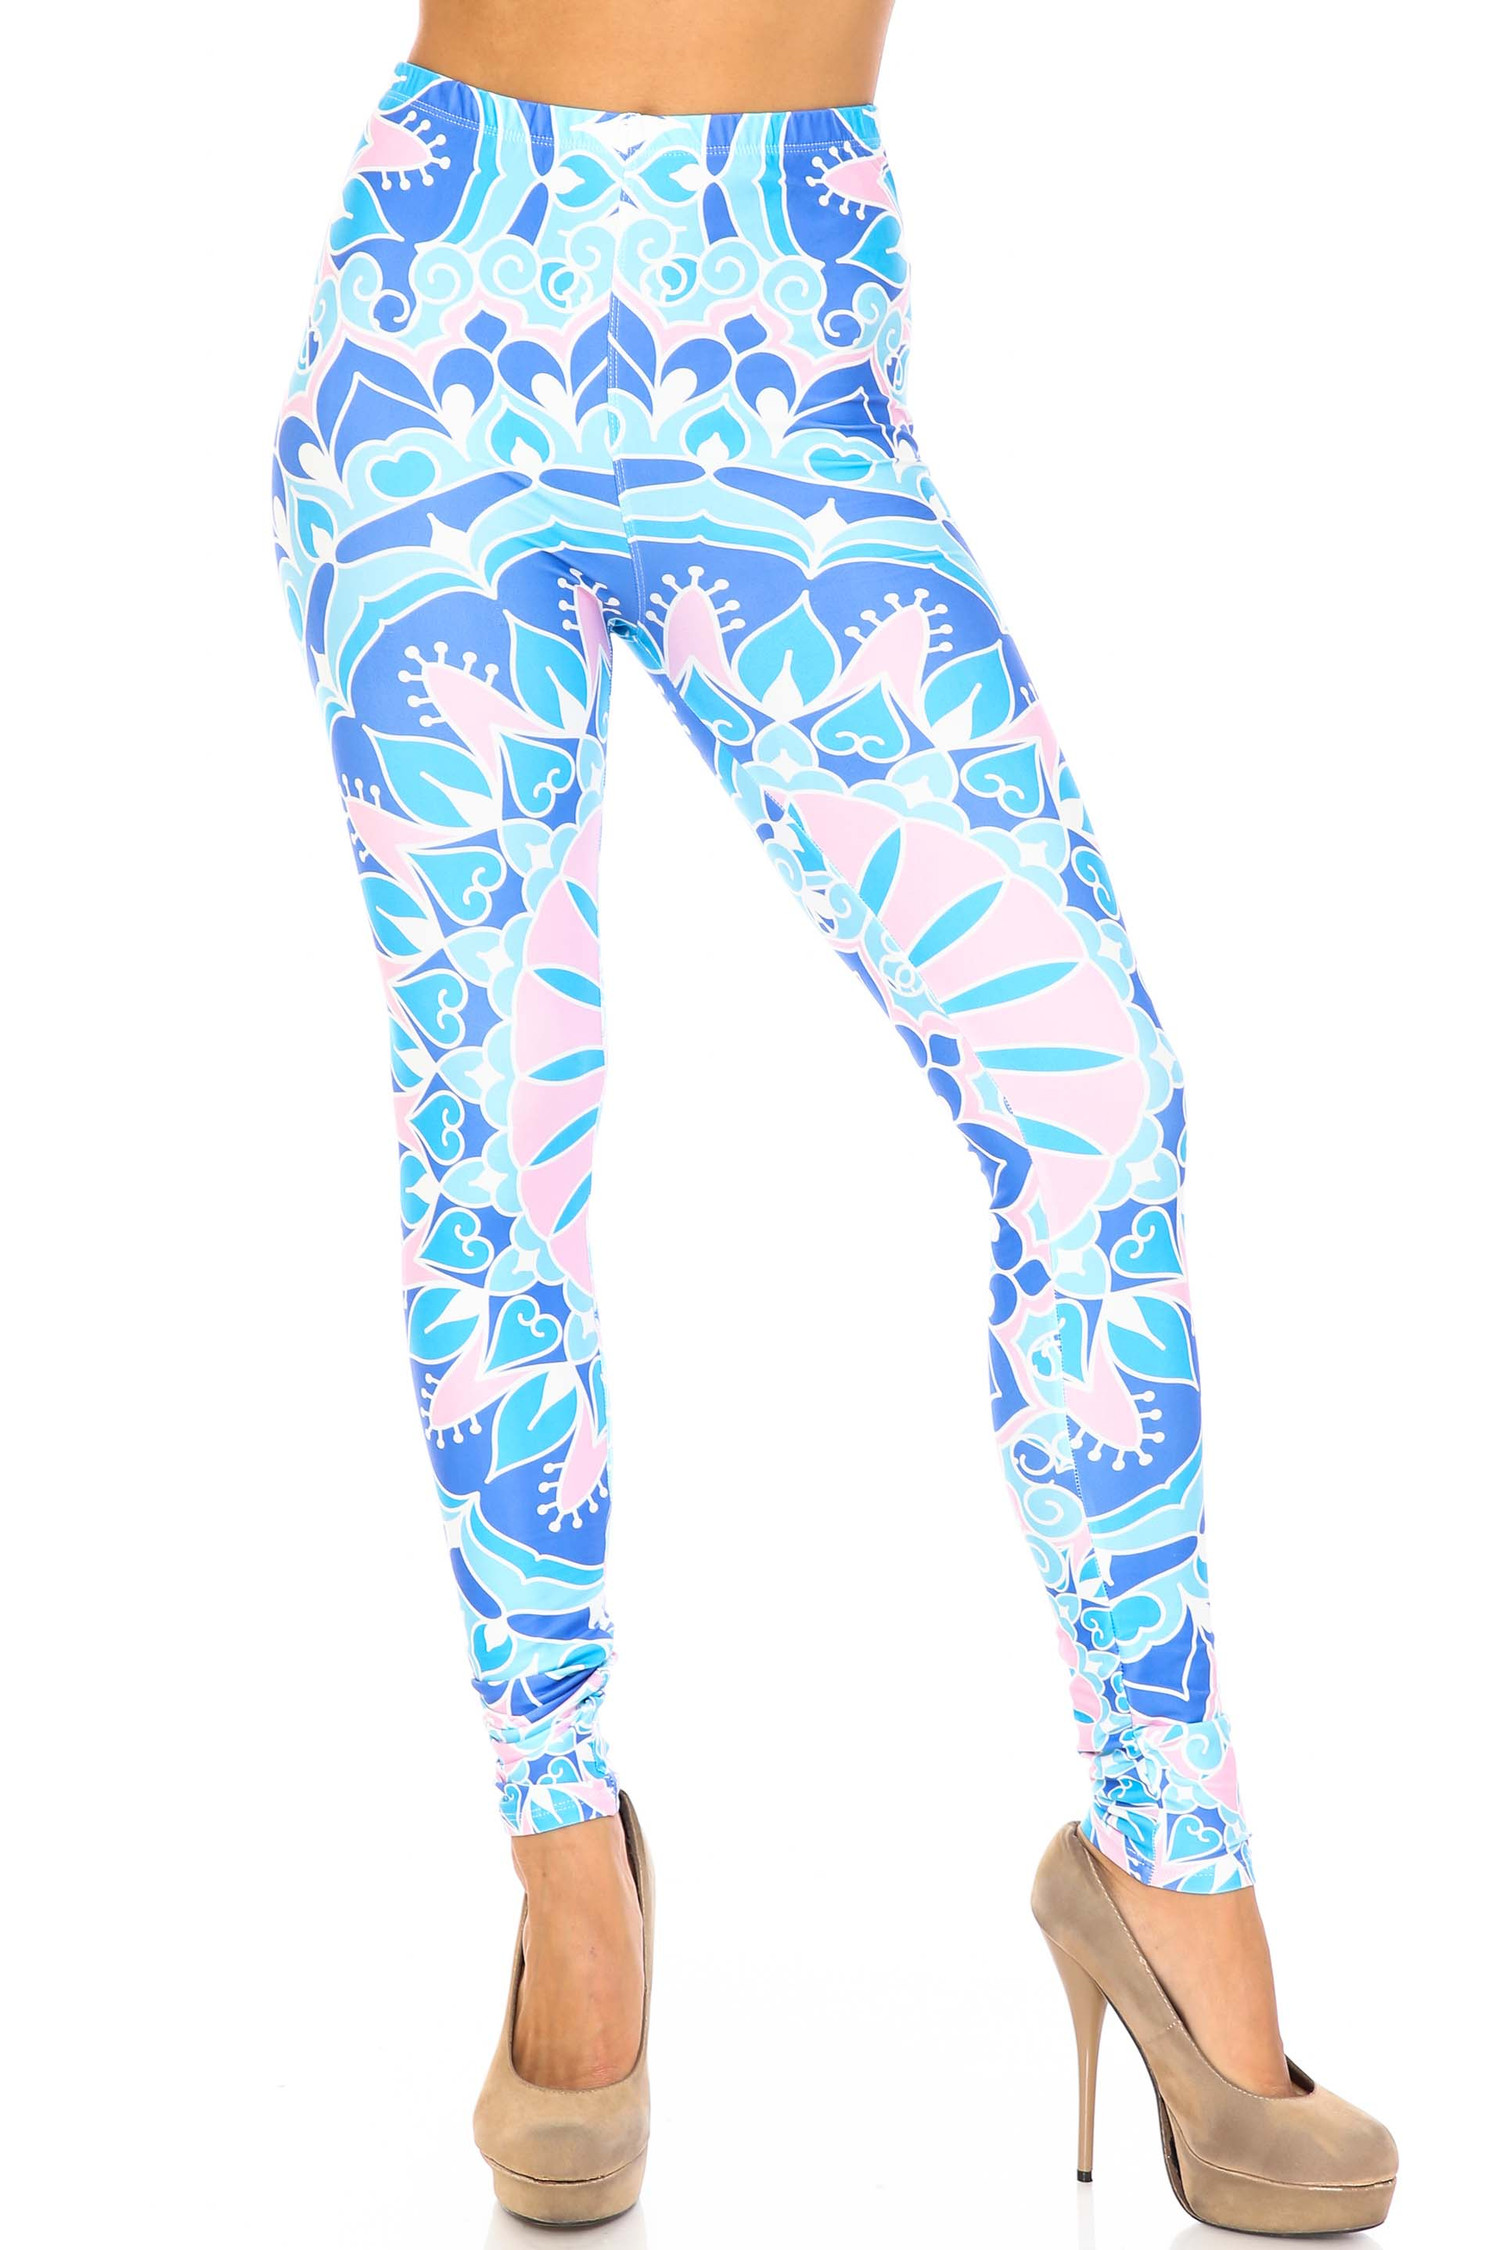 Creamy Soft Bursting Blue Mandala Leggings - USA Fashion™